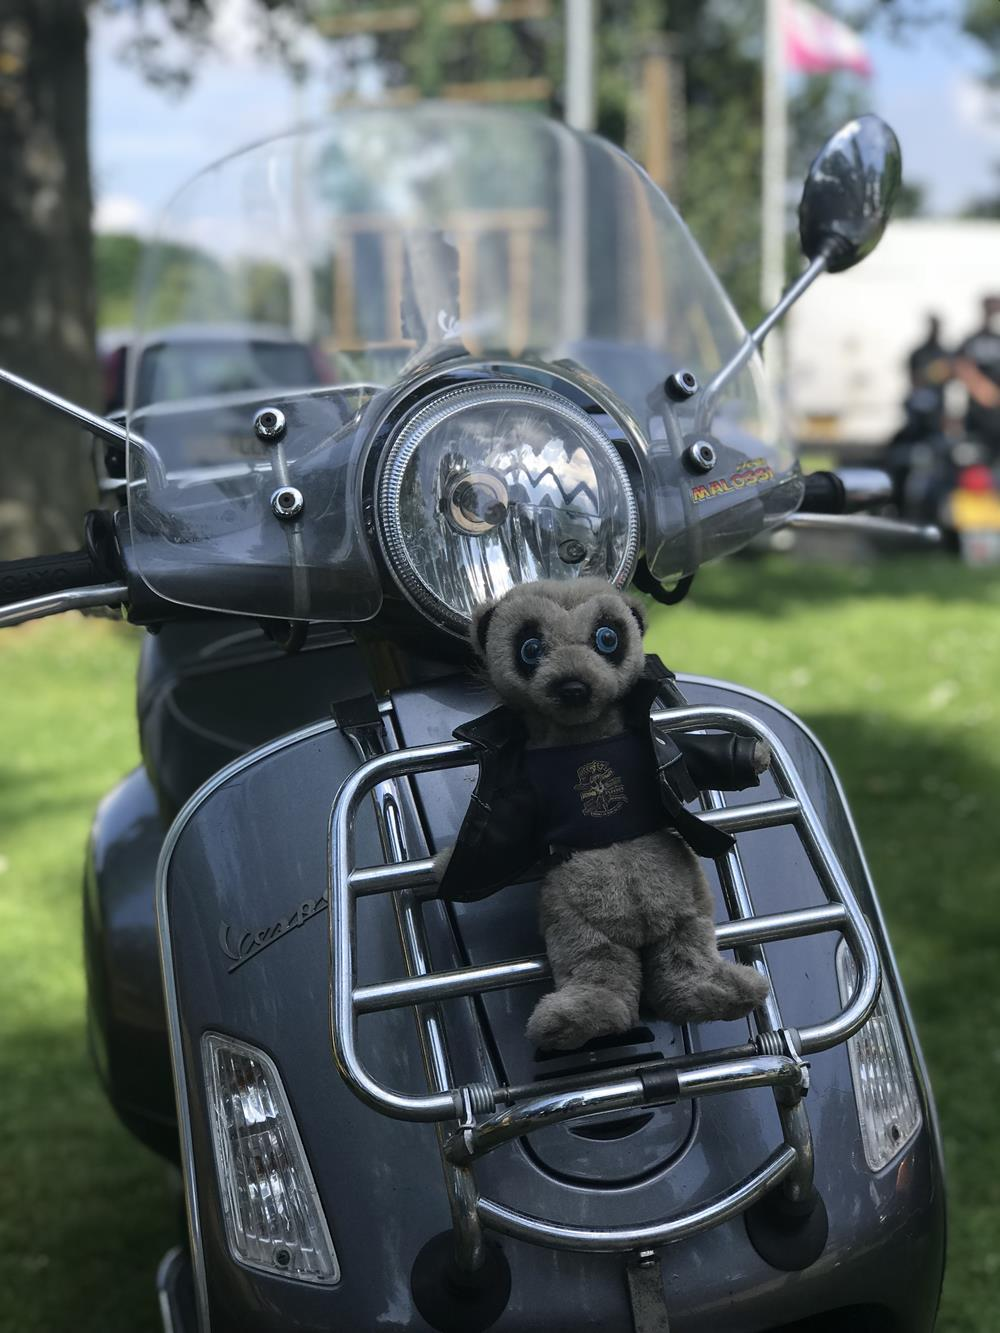 GTS with cuddly meerkat strapped to the front rack